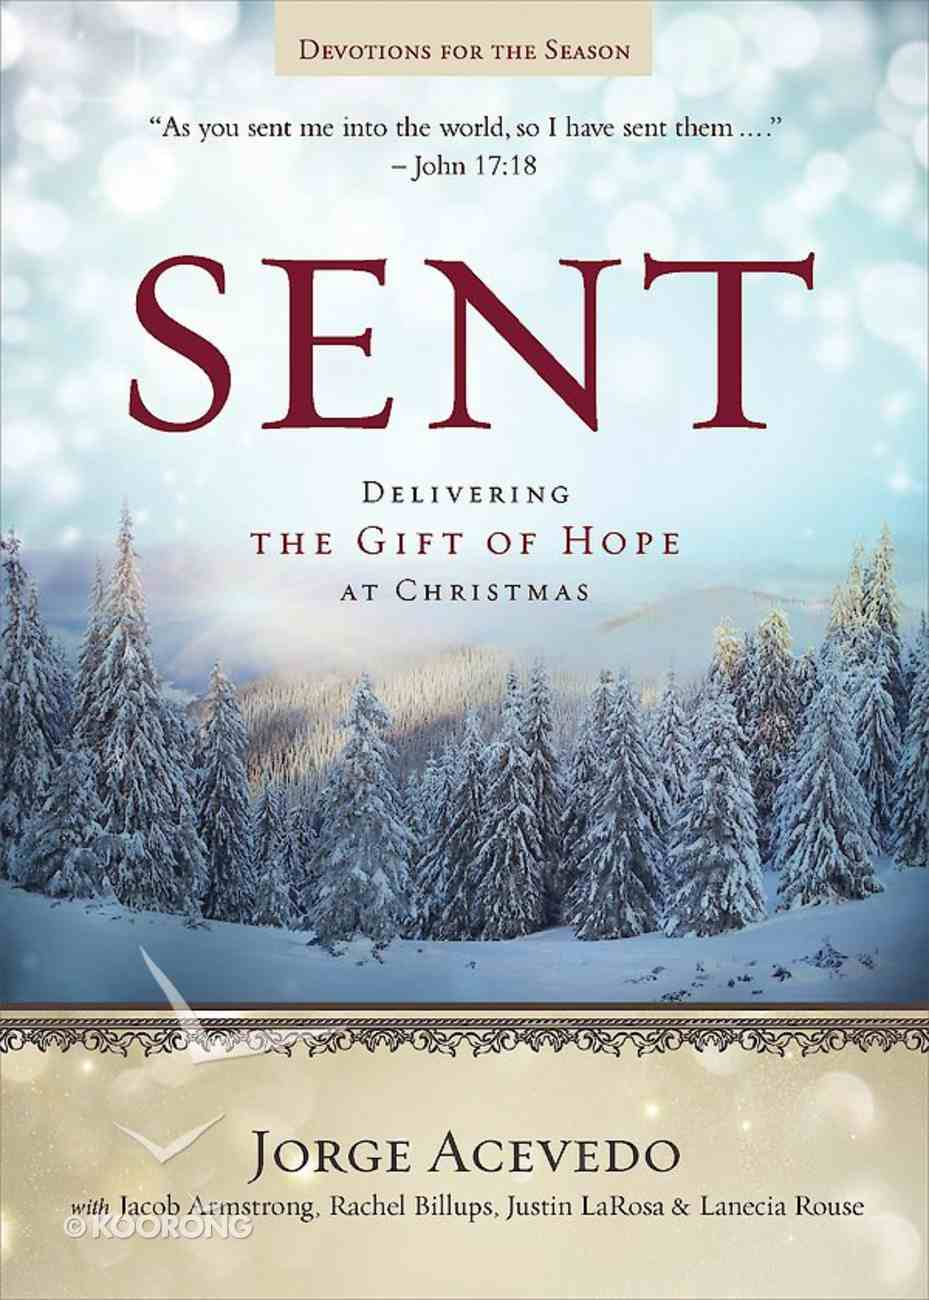 Delivering the Gift of Hope At Christmas (Devotions For the Season) (Sent Advent Series) eBook